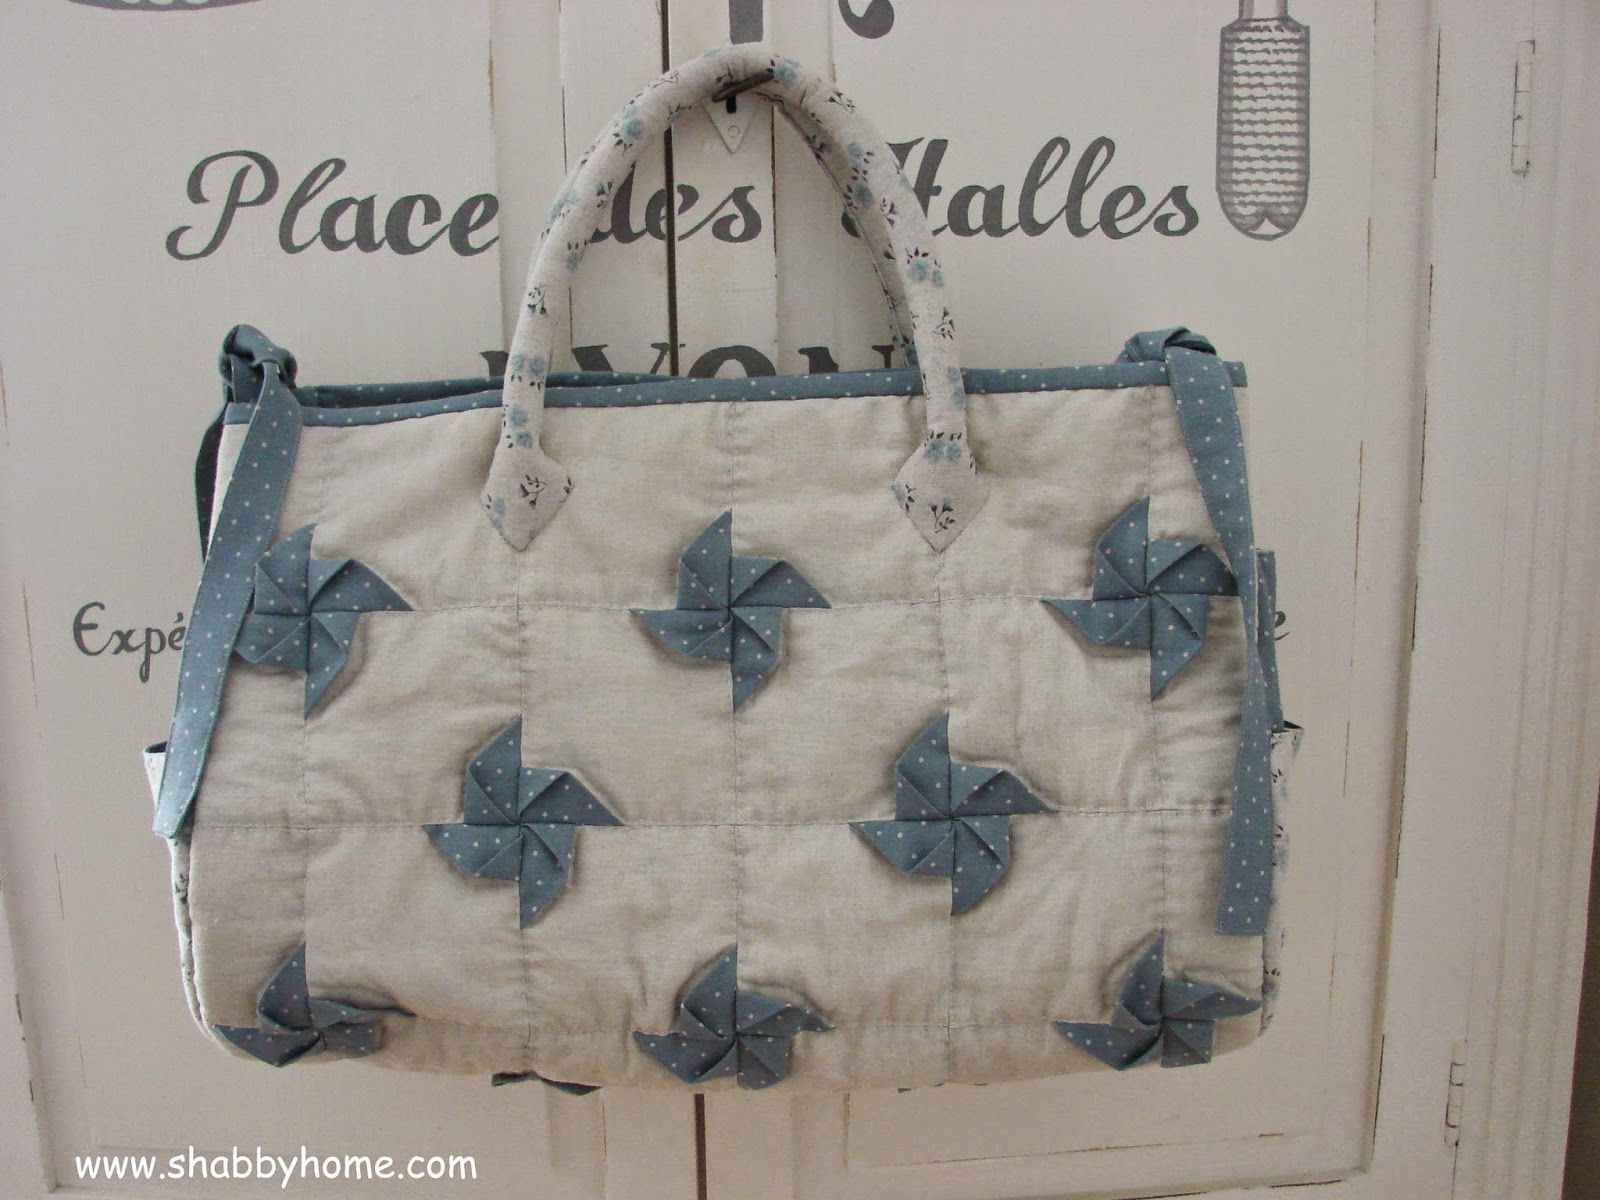 Shabby Home: Amore a prima vista!  Love at first sight!